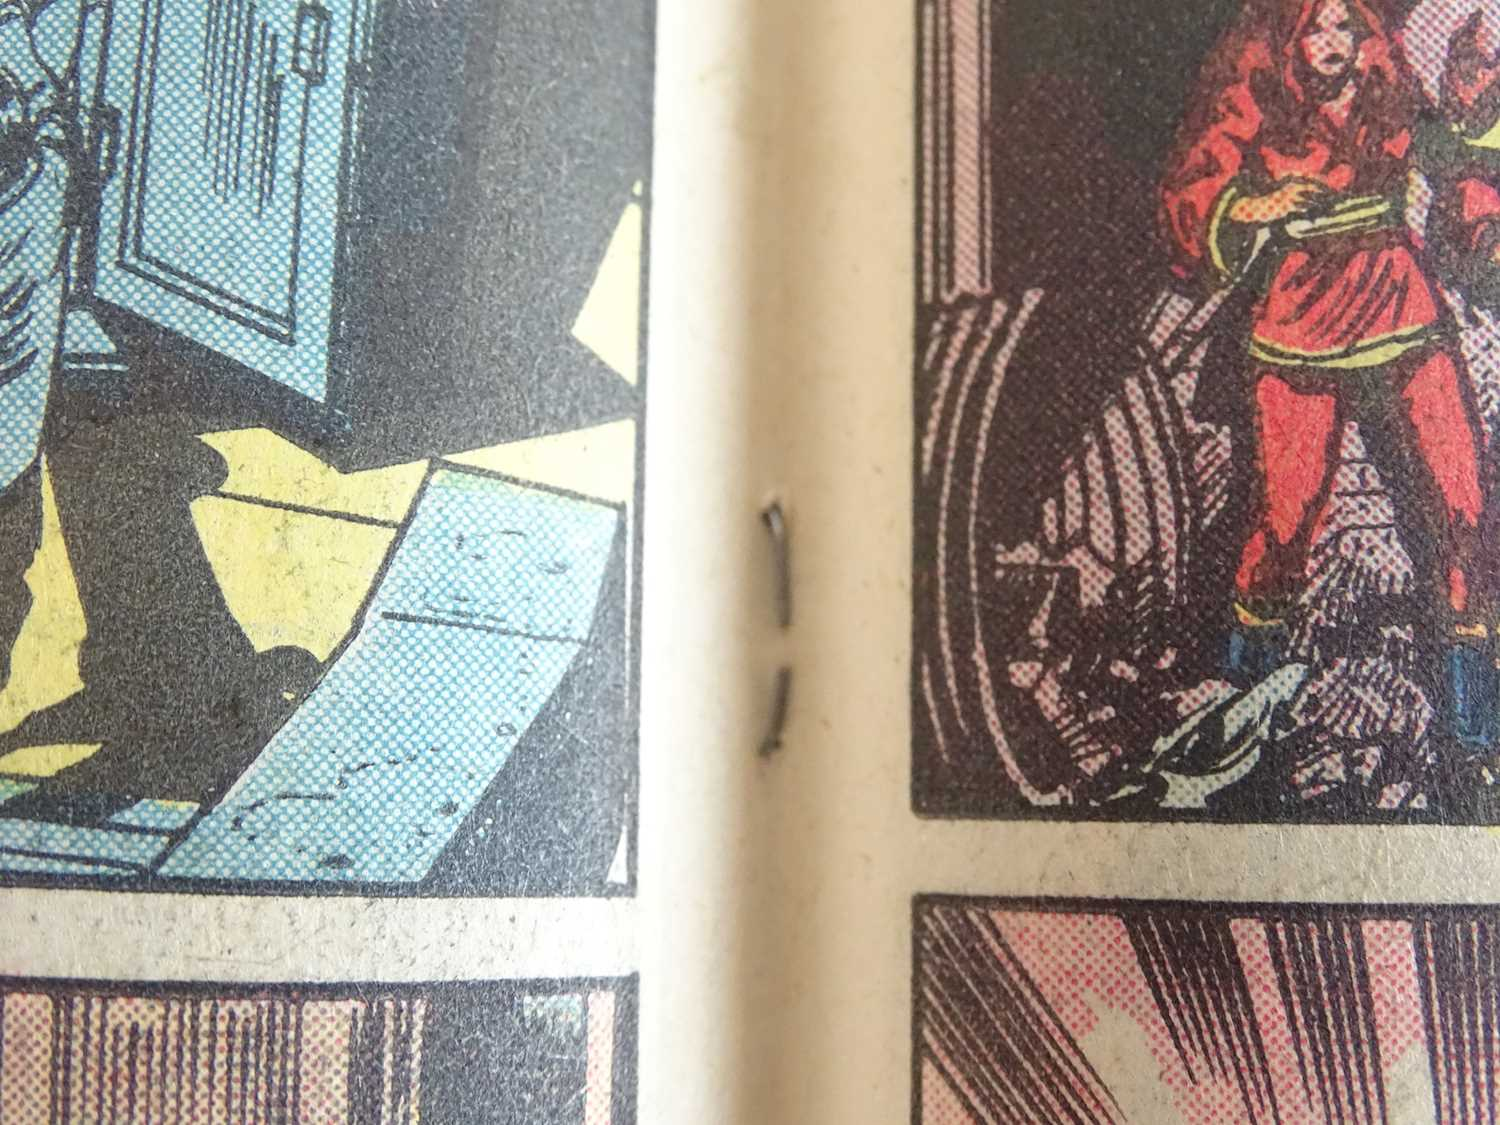 POWER MAN & IRON FIST #66 - (1980 - MARVEL) Second appearance of Sabretooth + Misty Knight, - Image 6 of 9